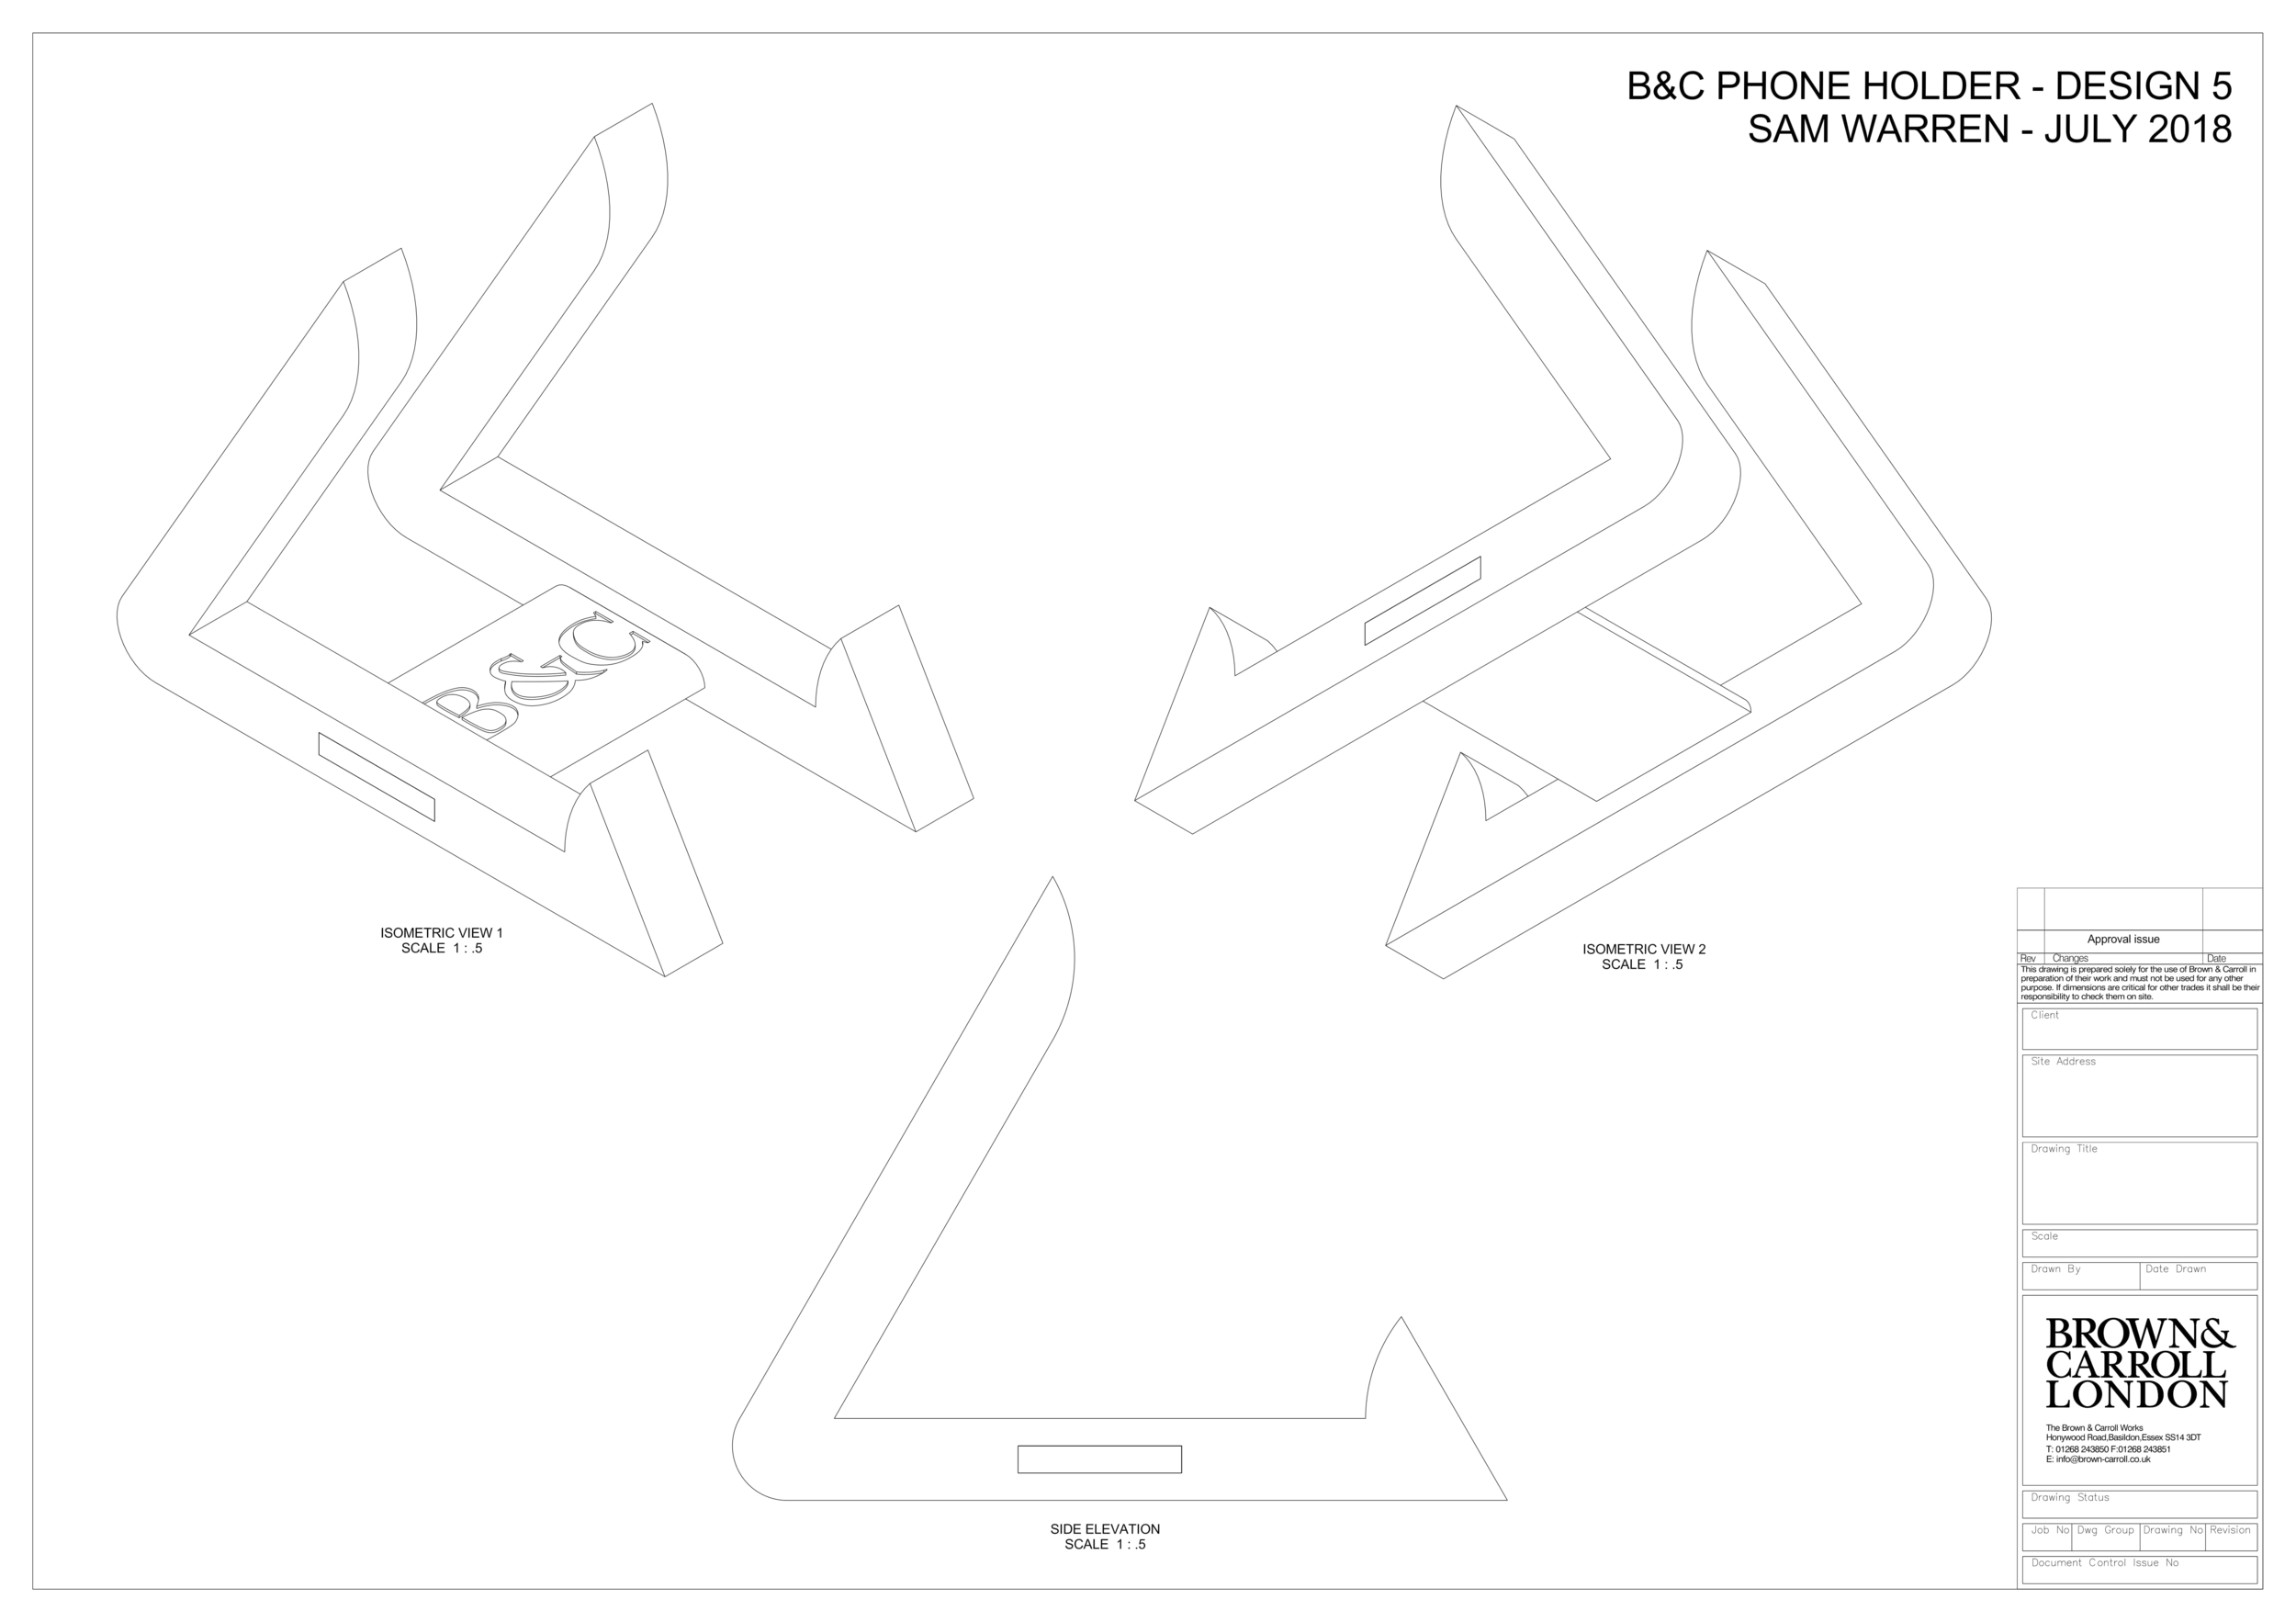 phone holder 5 - drawing-1.png